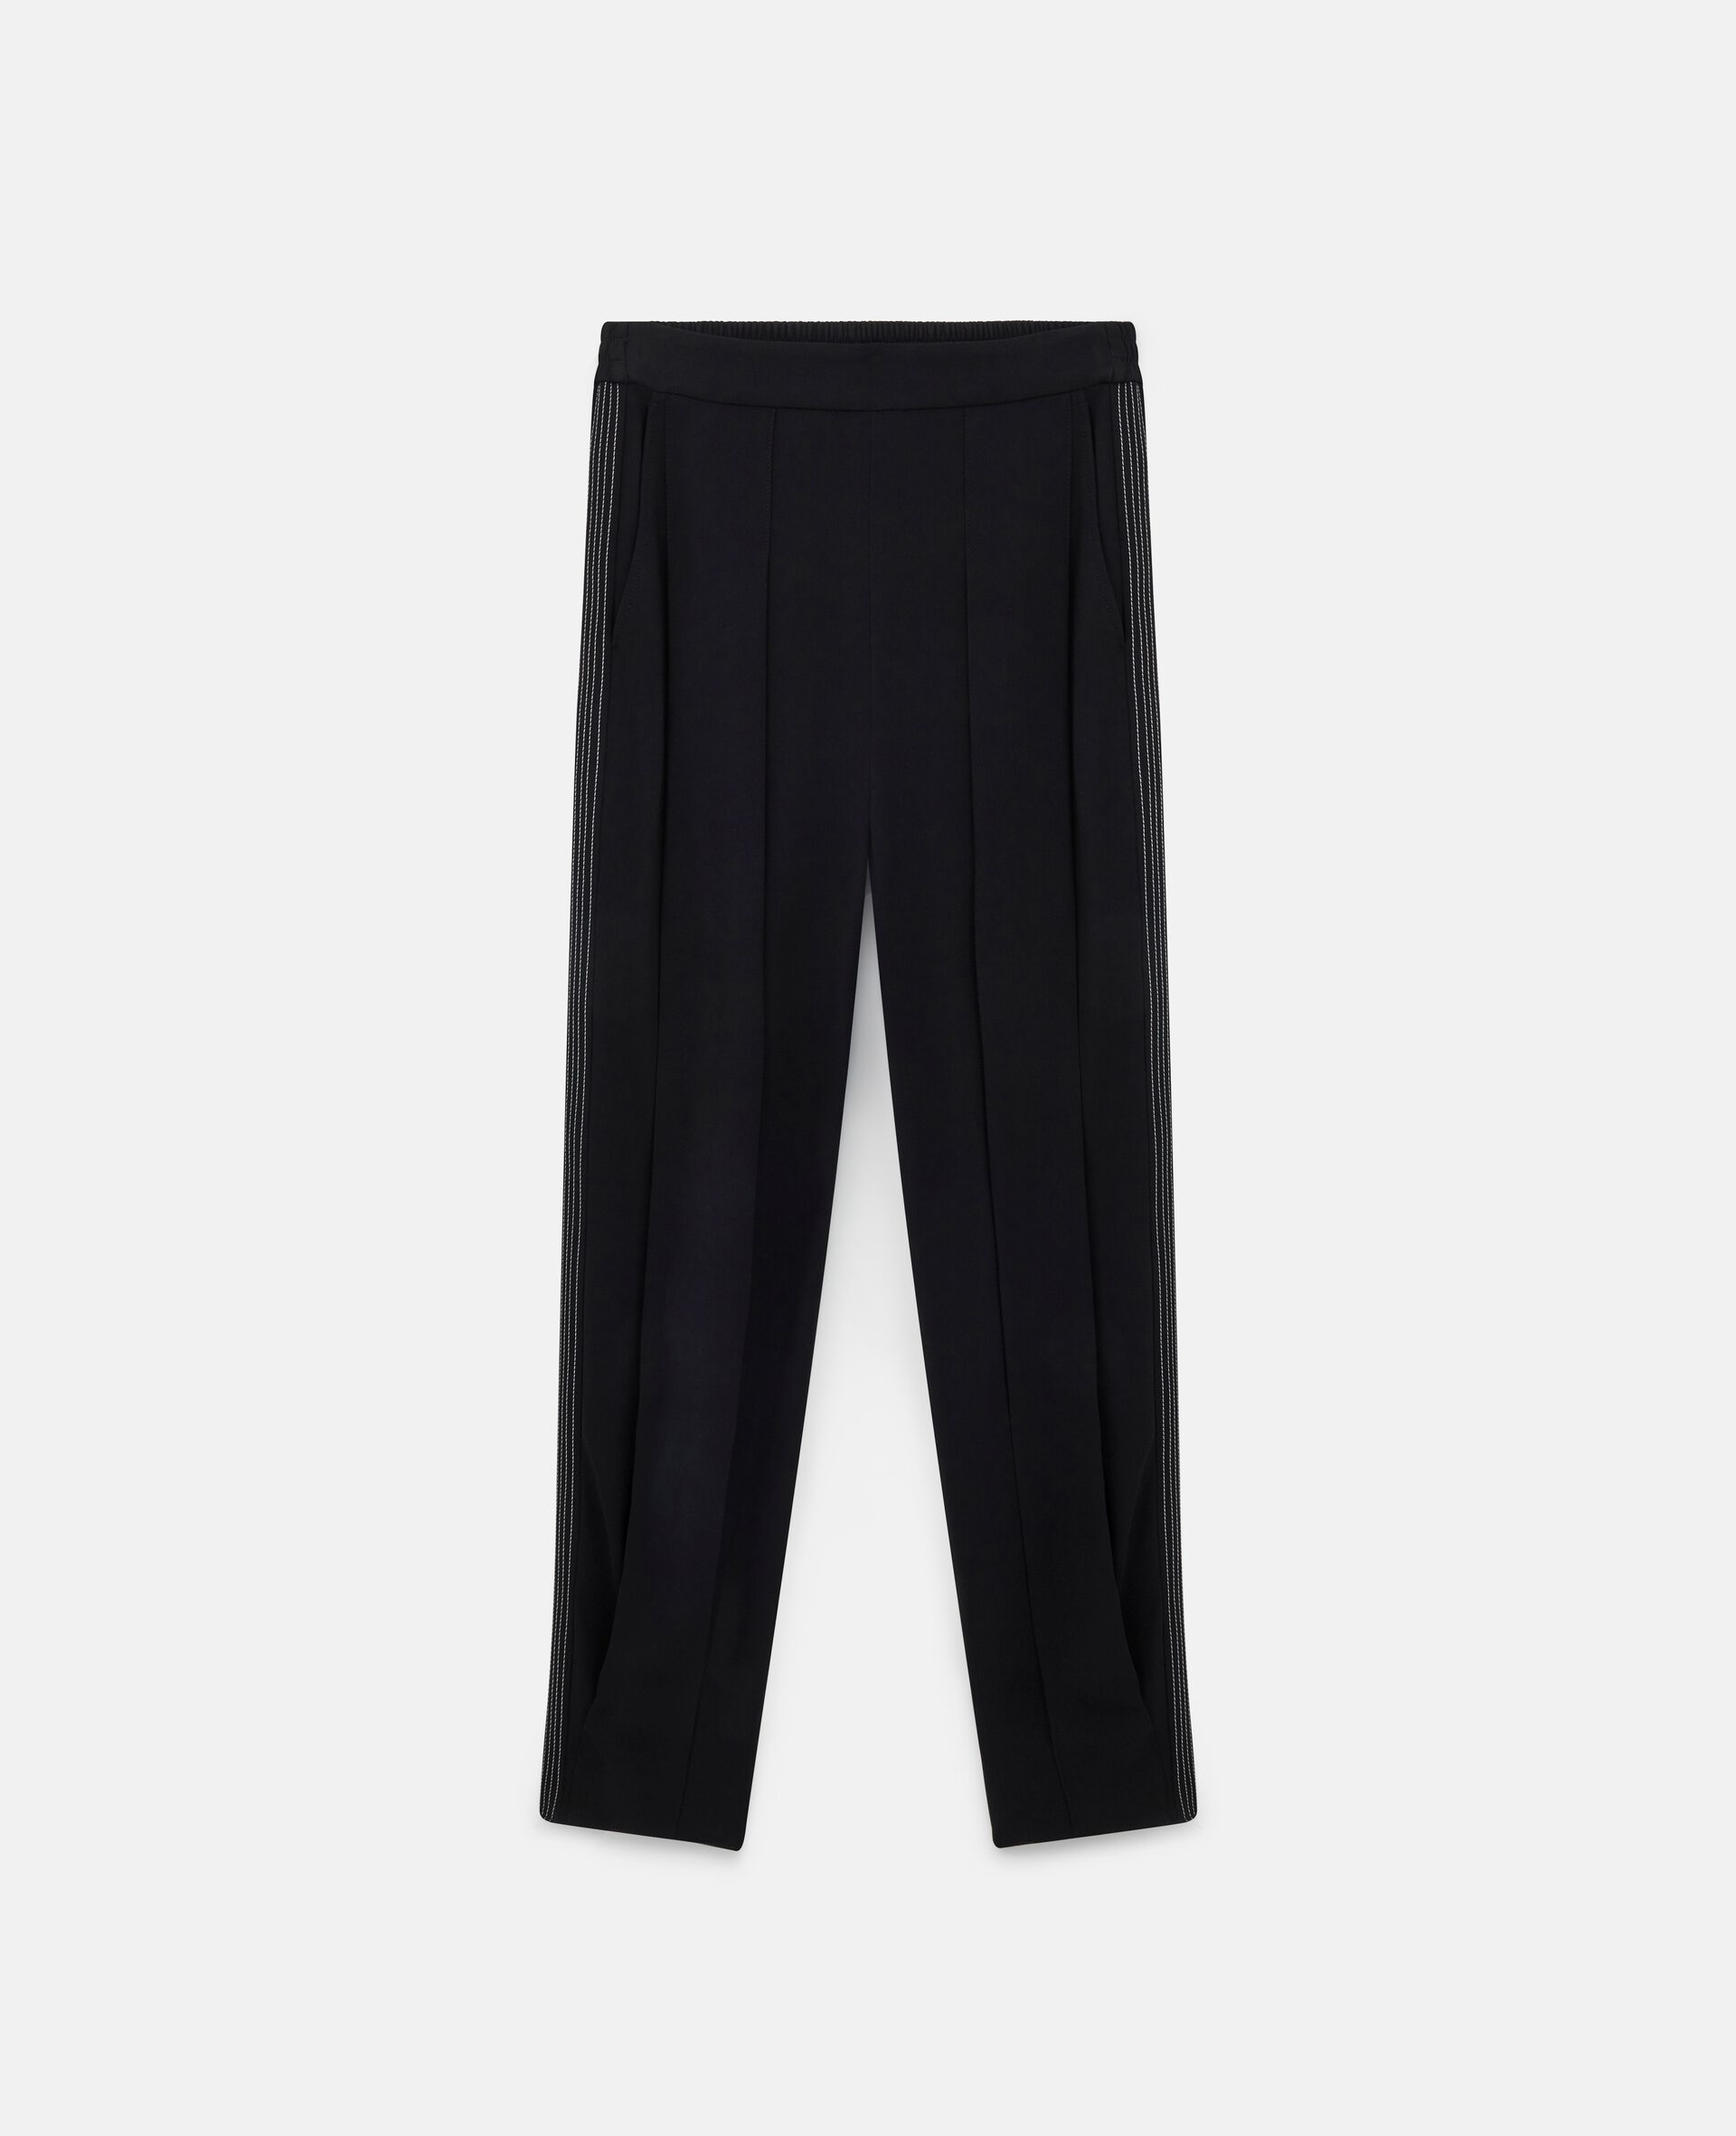 Christelle Trousers-Black-large image number 0